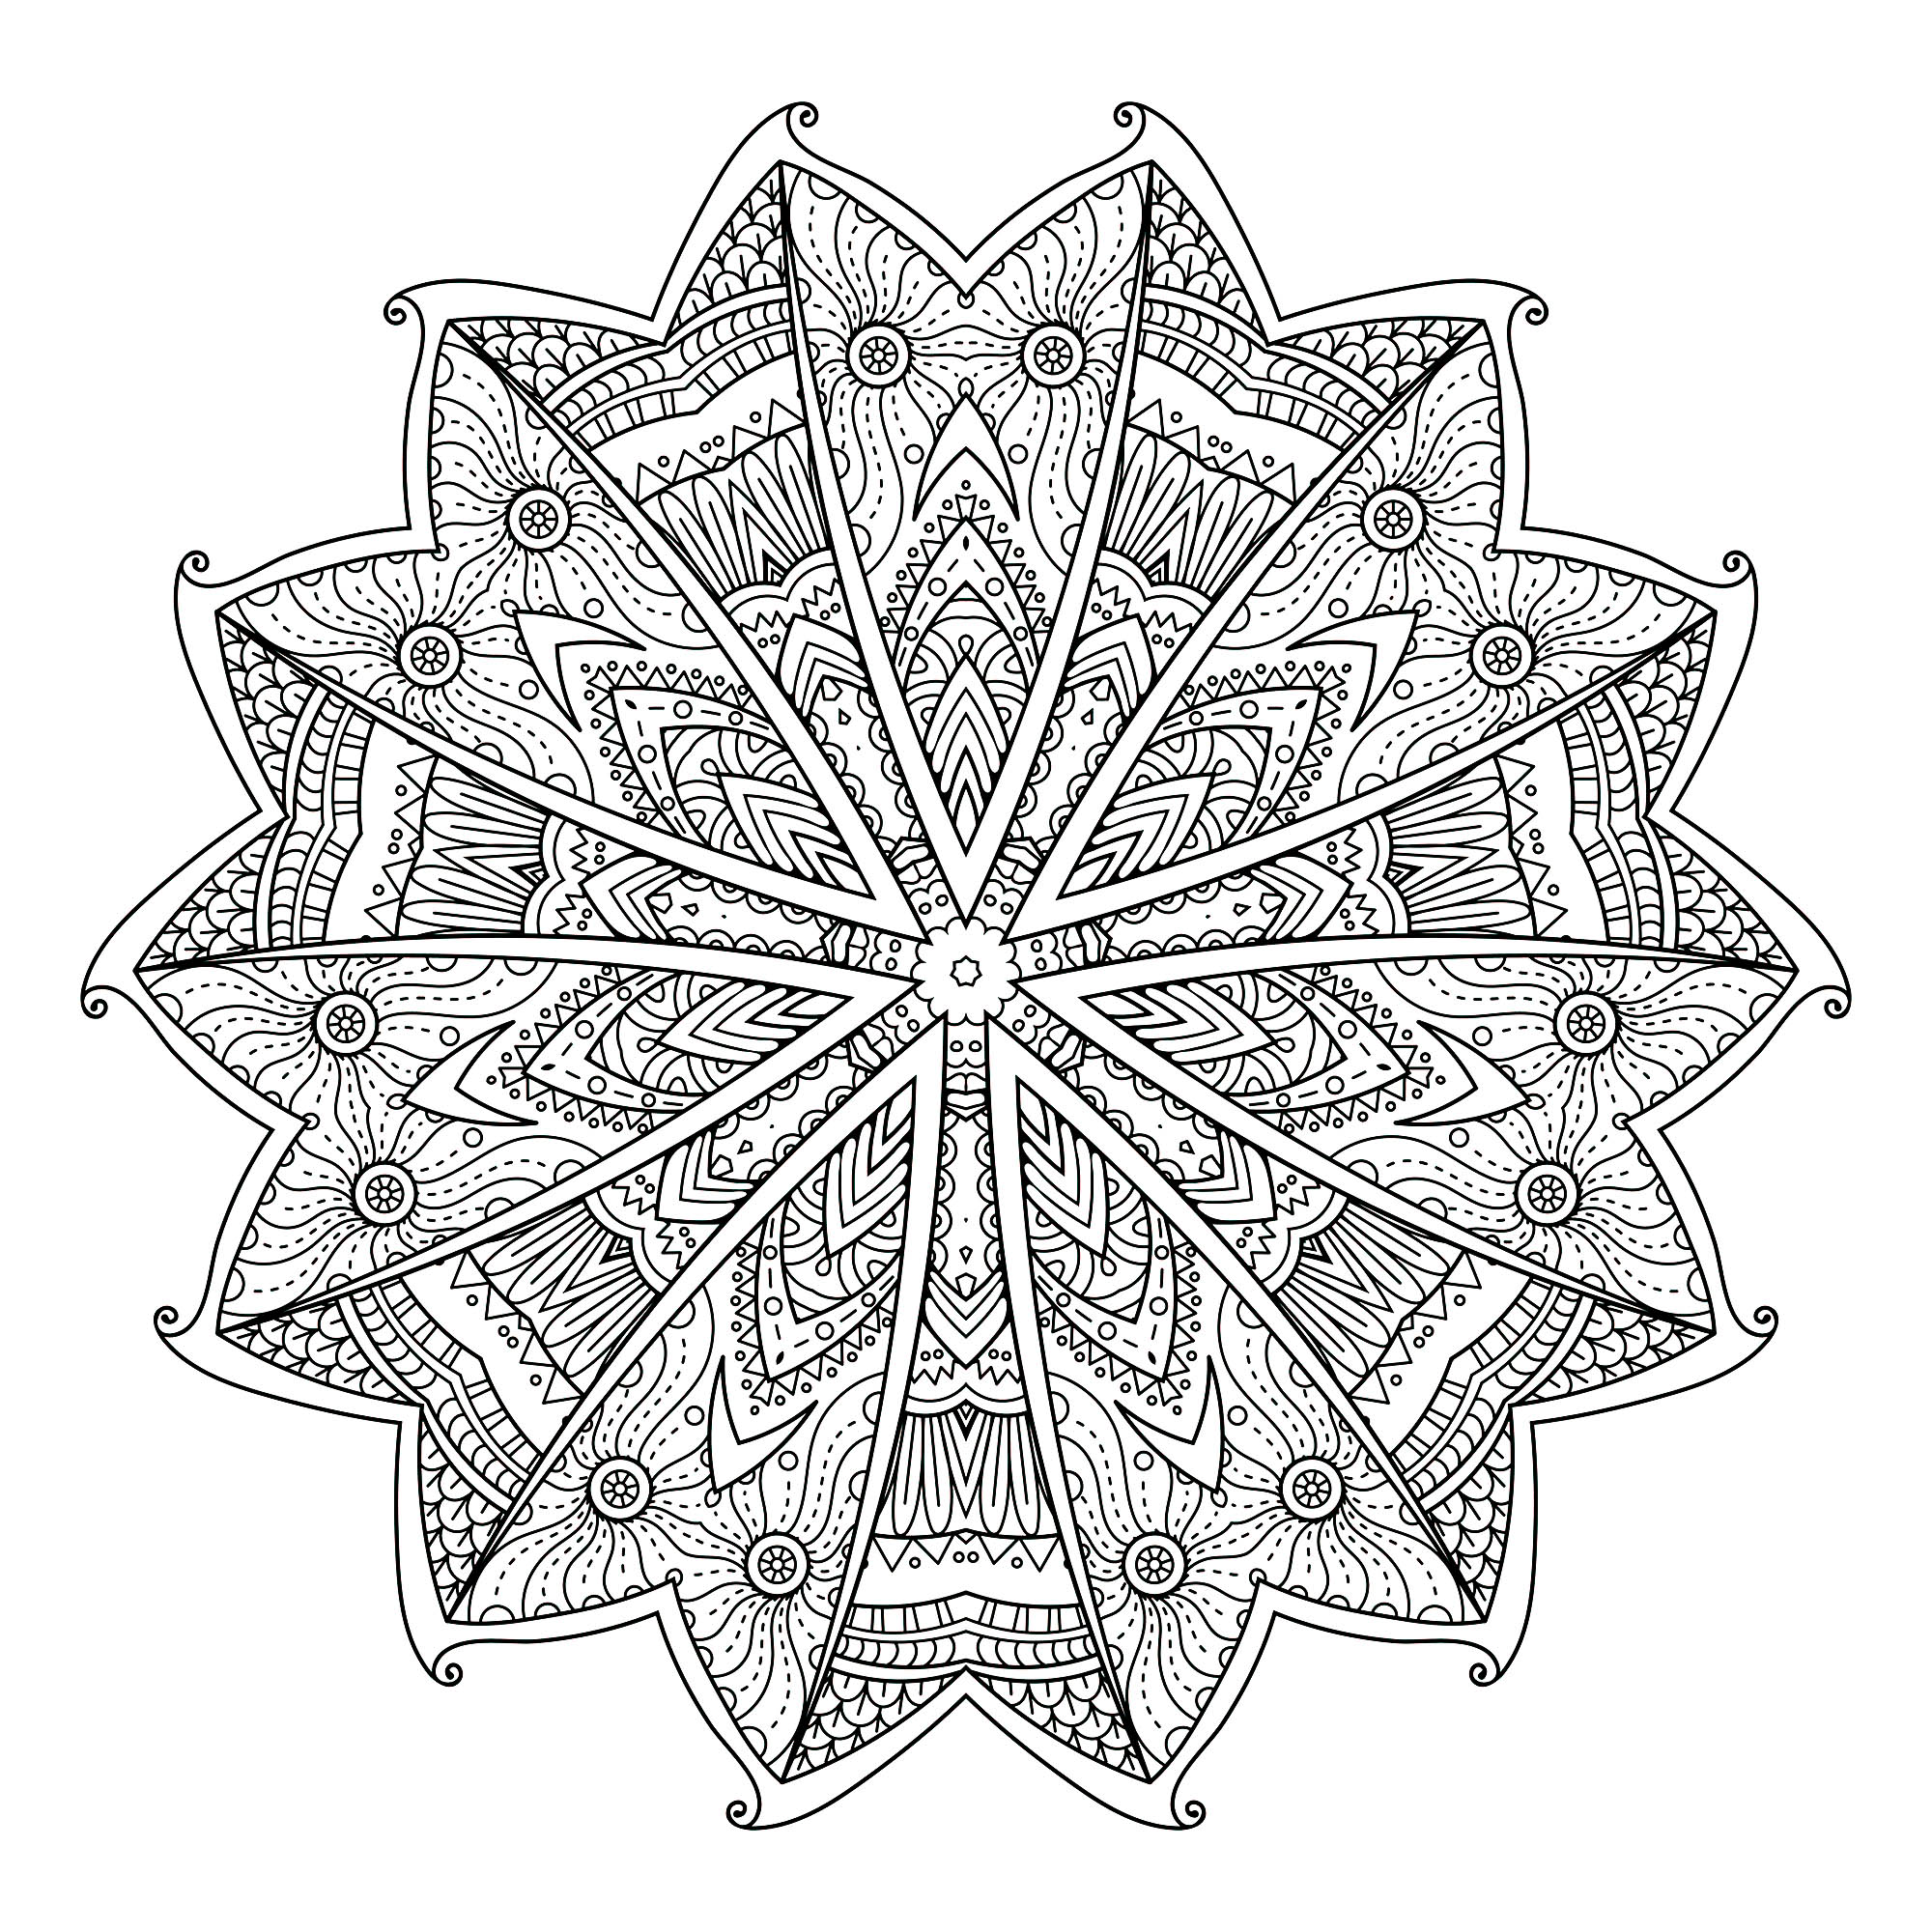 The plant elements often marry very well with the Mandalas, it's the case with this coloring page of a great originality.